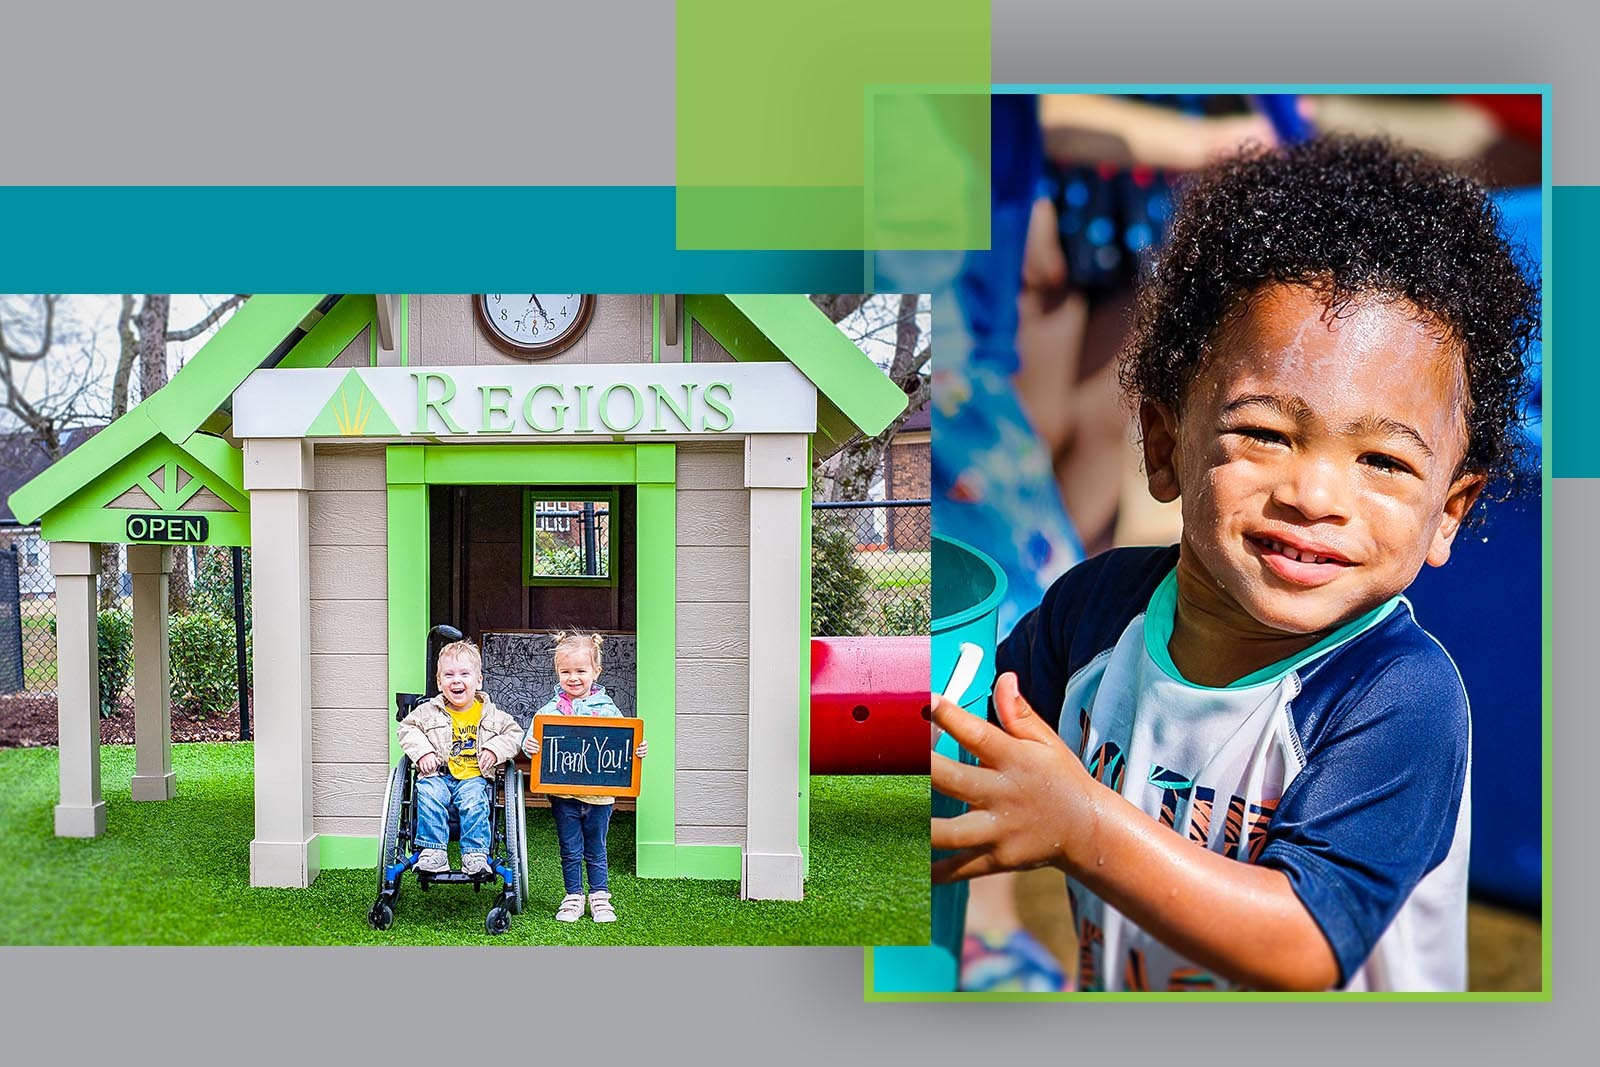 Regions contributed to a bank playhouse for High Hopes students to enjoy as part of the school's playground.